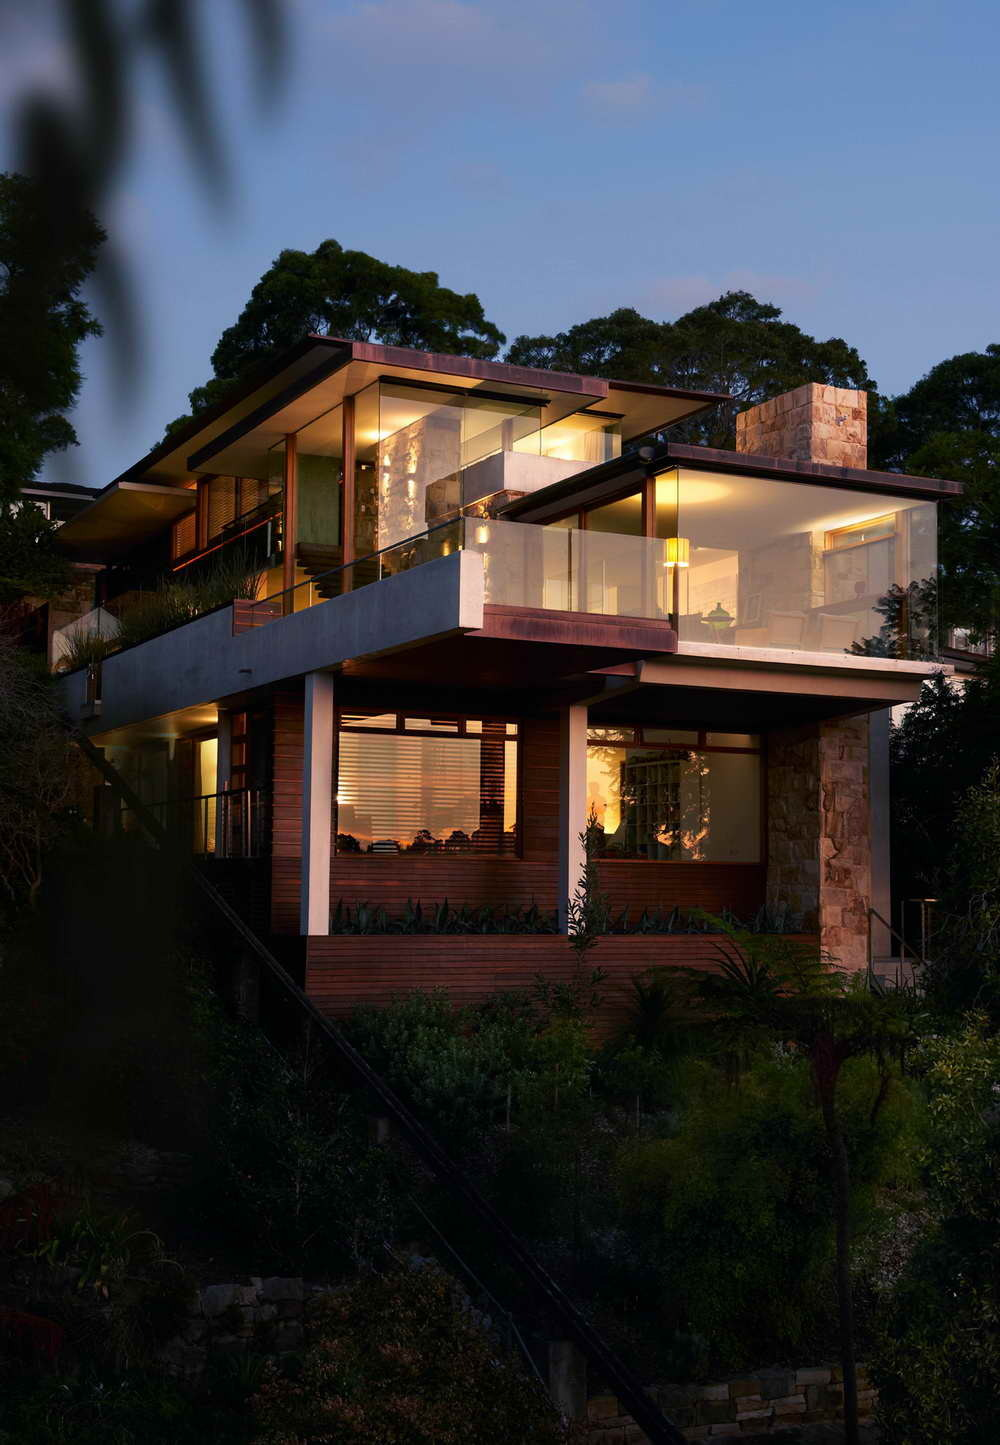 justthedesign:  The Delaney Villa By Jorge Hrdina Architects